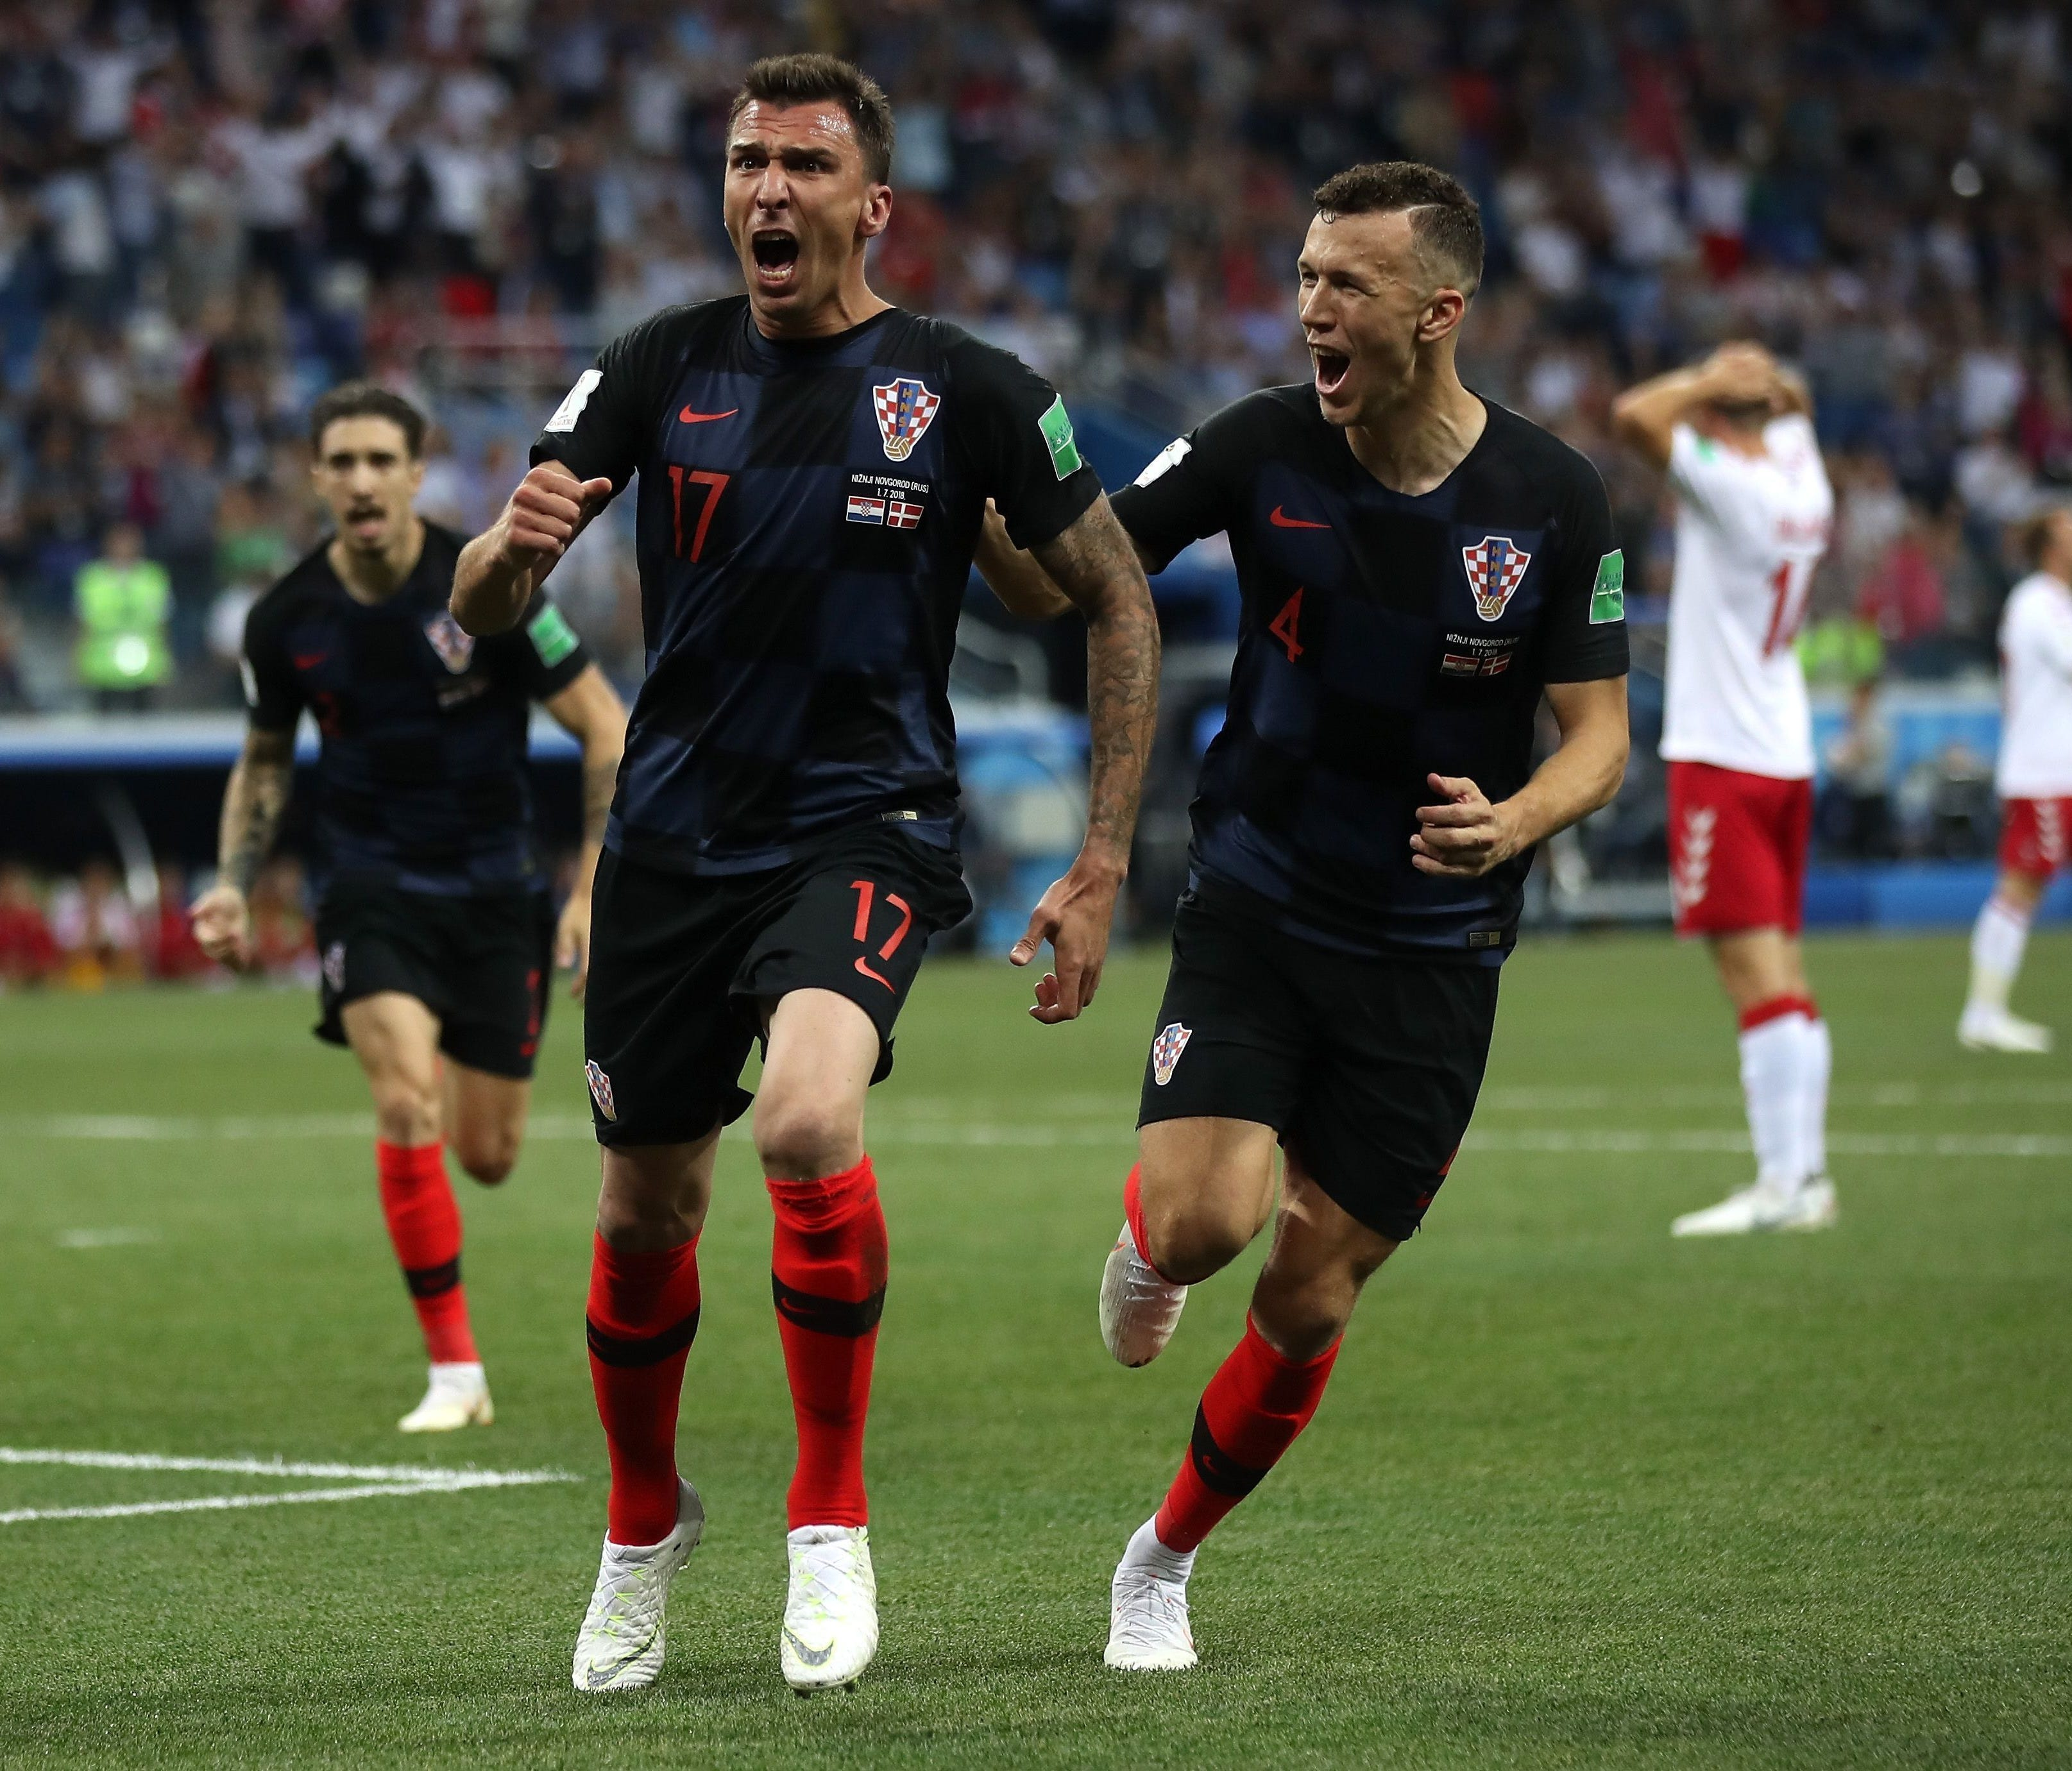 Mario Mandzukic of Croatia celebrates after scoring his team's first goal against Denmark in the round of 16 at the World Cup.